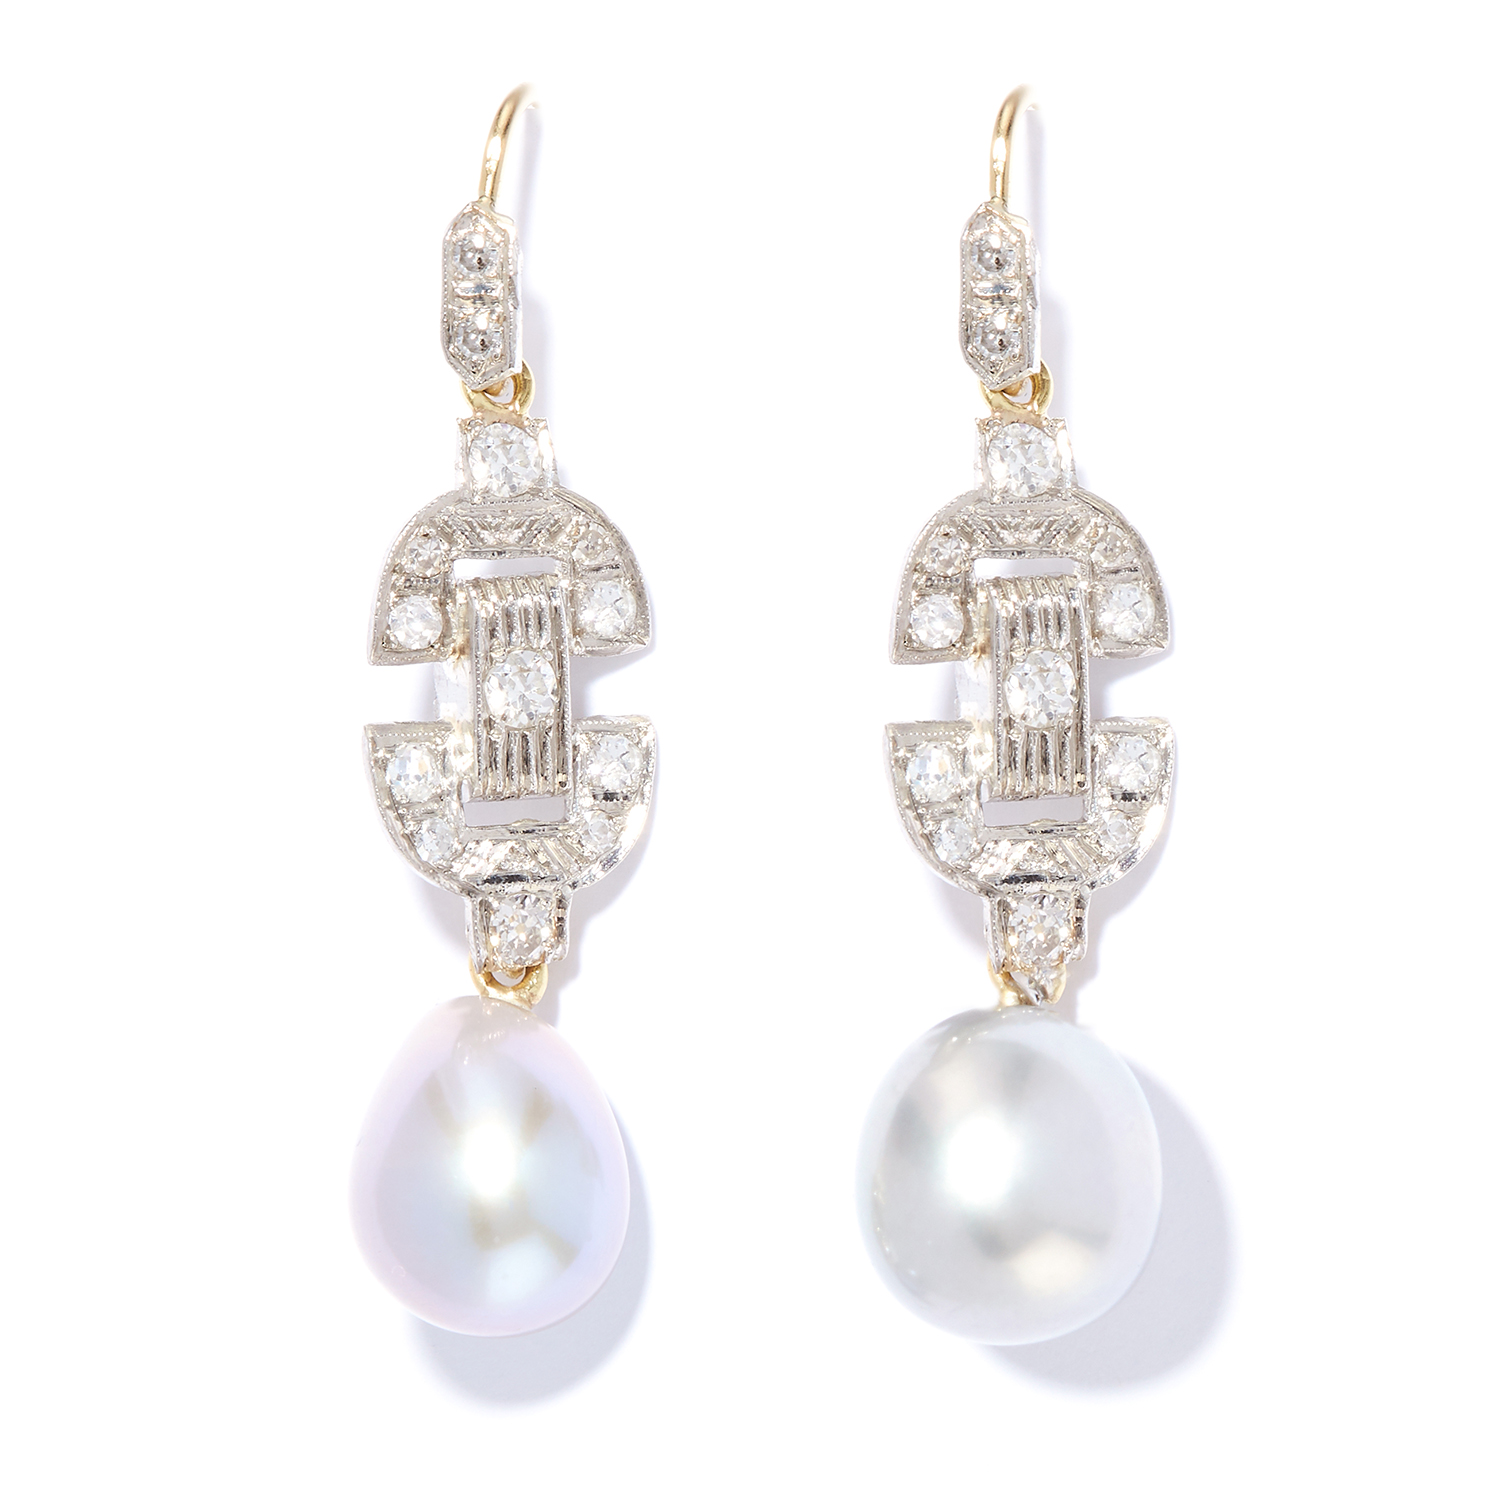 ART DECO PEARL AND DIAMOND DROP EARRINGS in platinum and yellow gold, each suspending a pearl